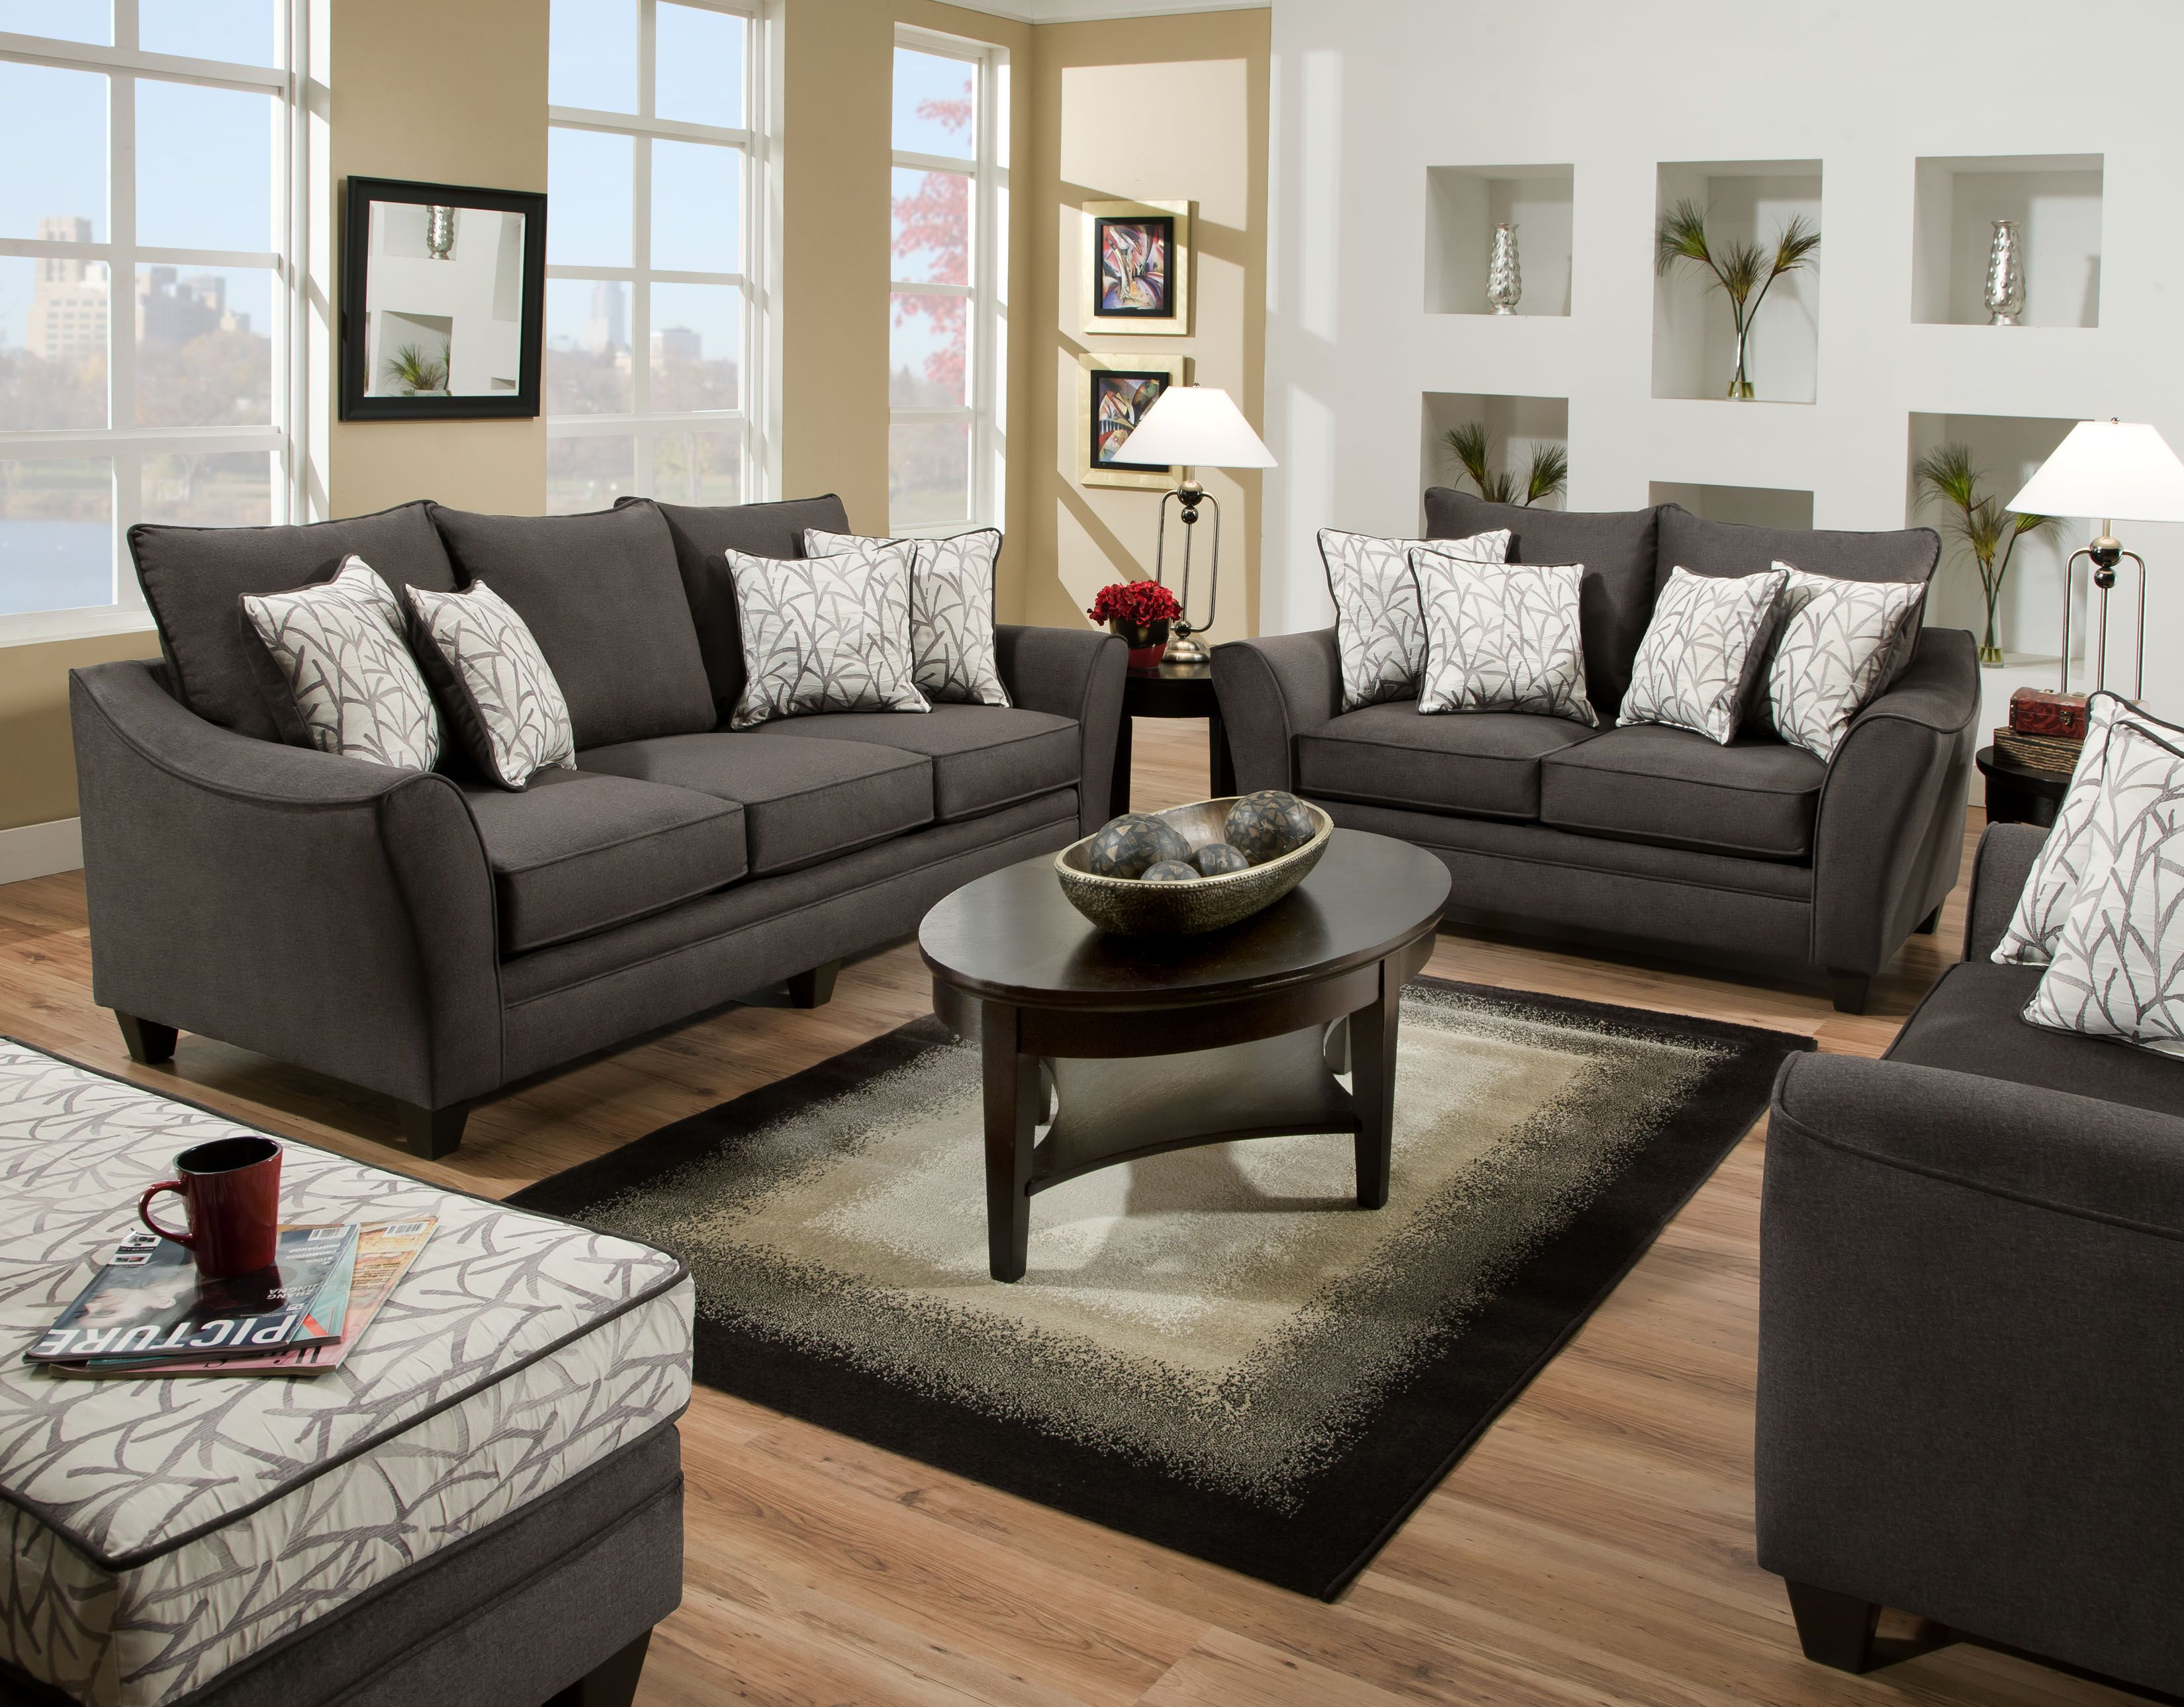 Bigu0027s Furniture Las Vegas Is Dedicated To Bringing You A Wide Variety Of  Home Furnishings At · Living Room ... Part 61